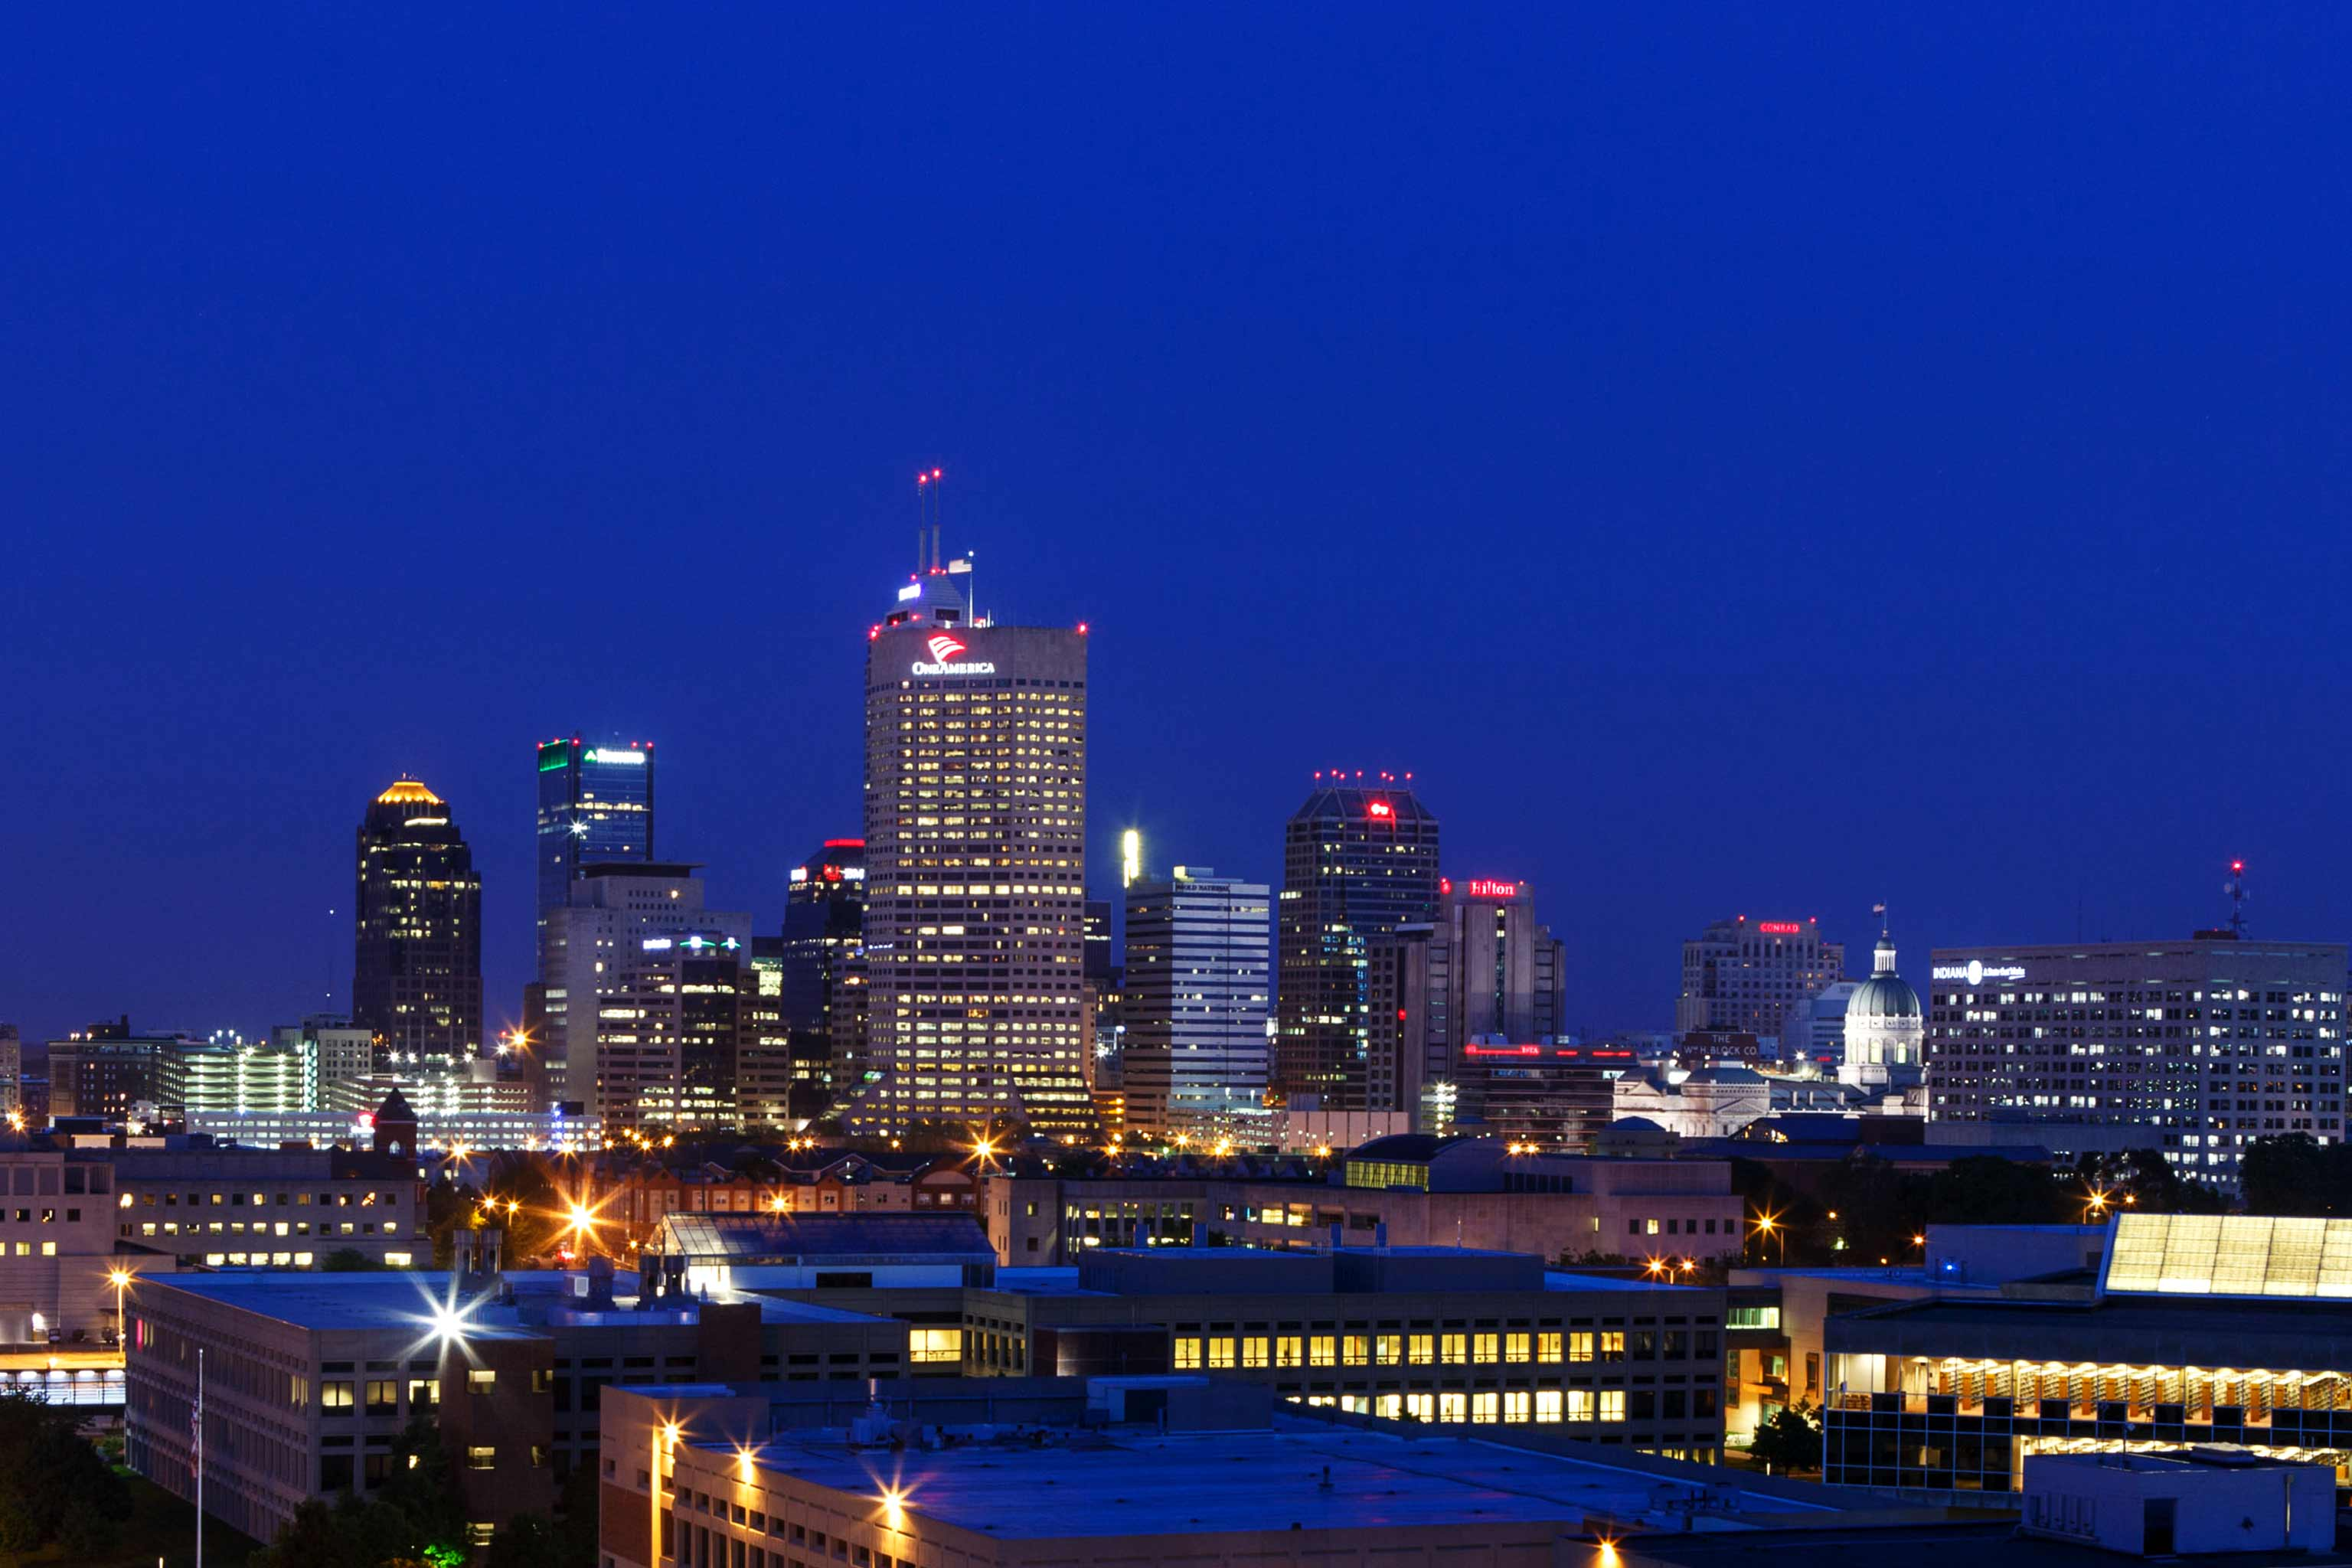 The Indianapolis skyline in the evening